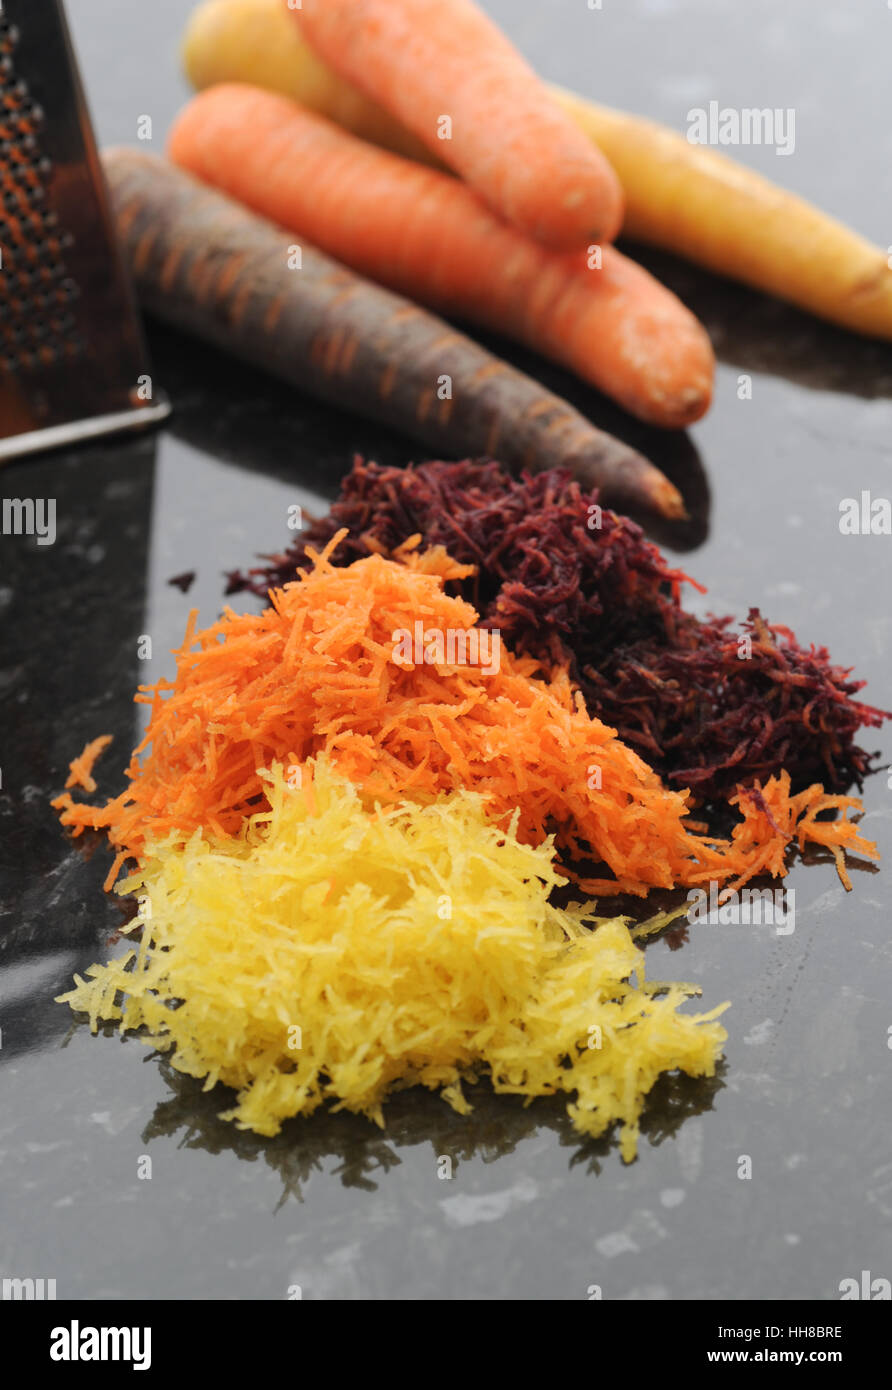 Grated carrot. Yellow, orange and purple. - Stock Image